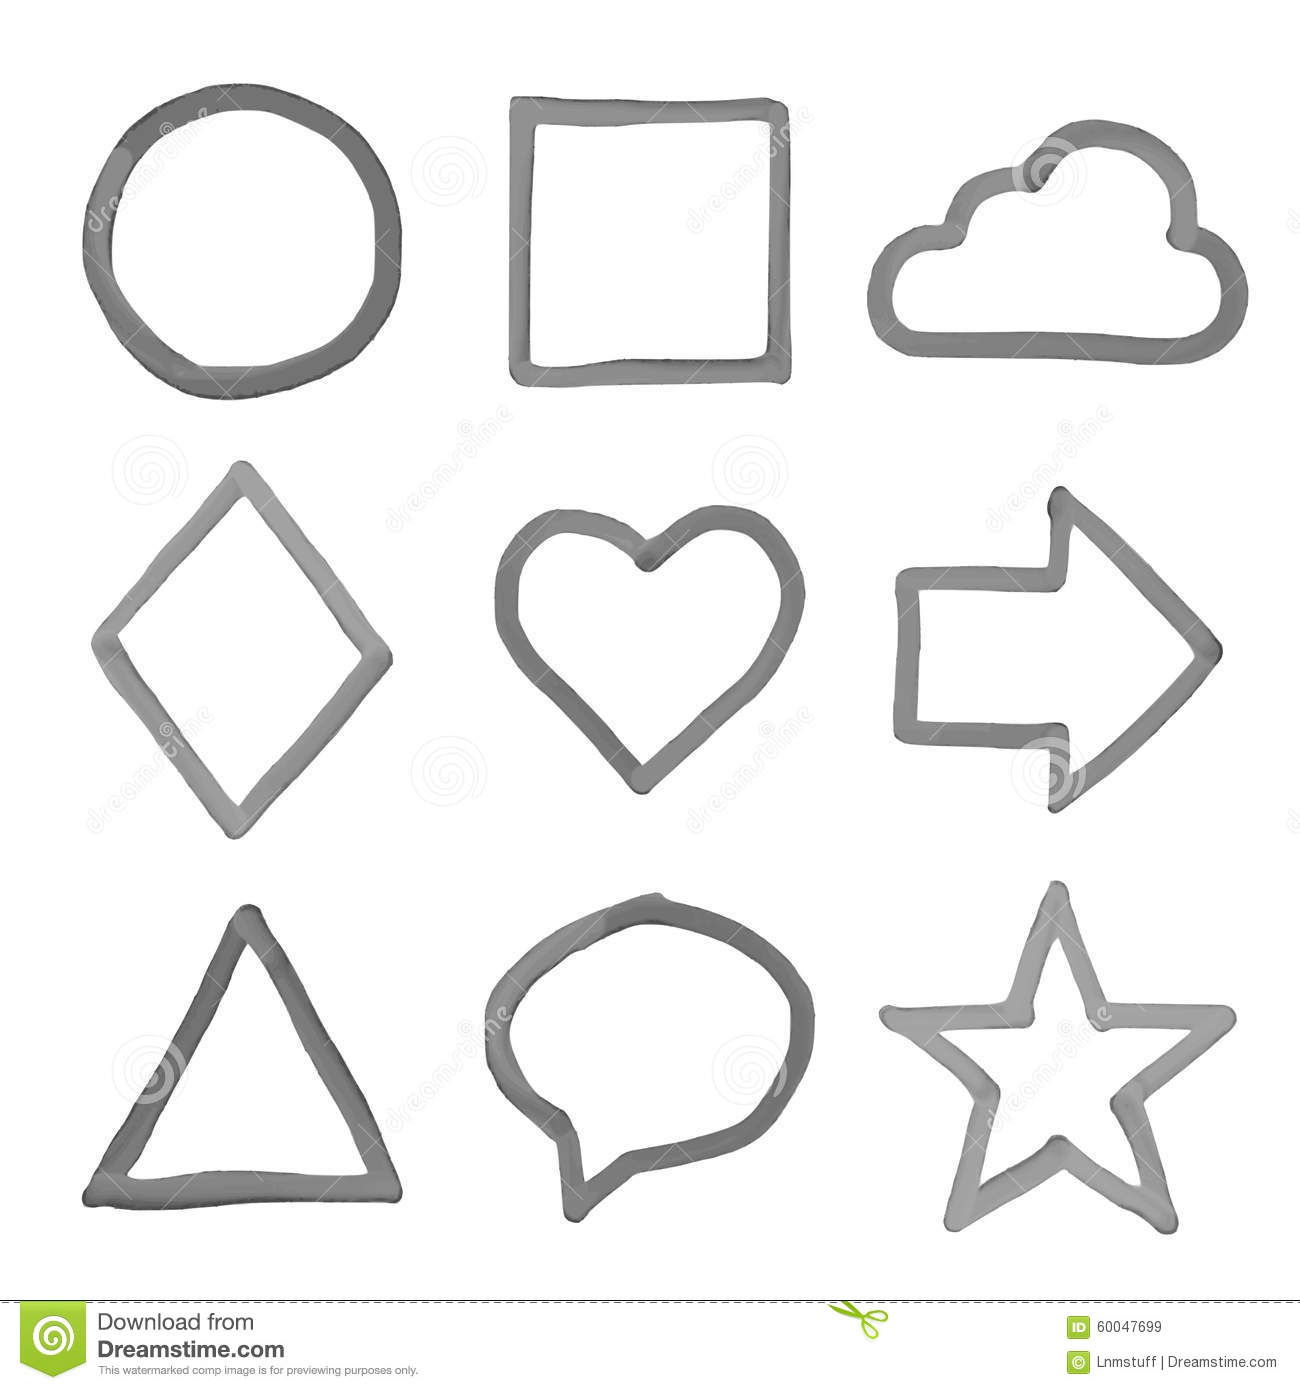 Hand Drawn Shapes Stock Vector Illustration Of Graphic